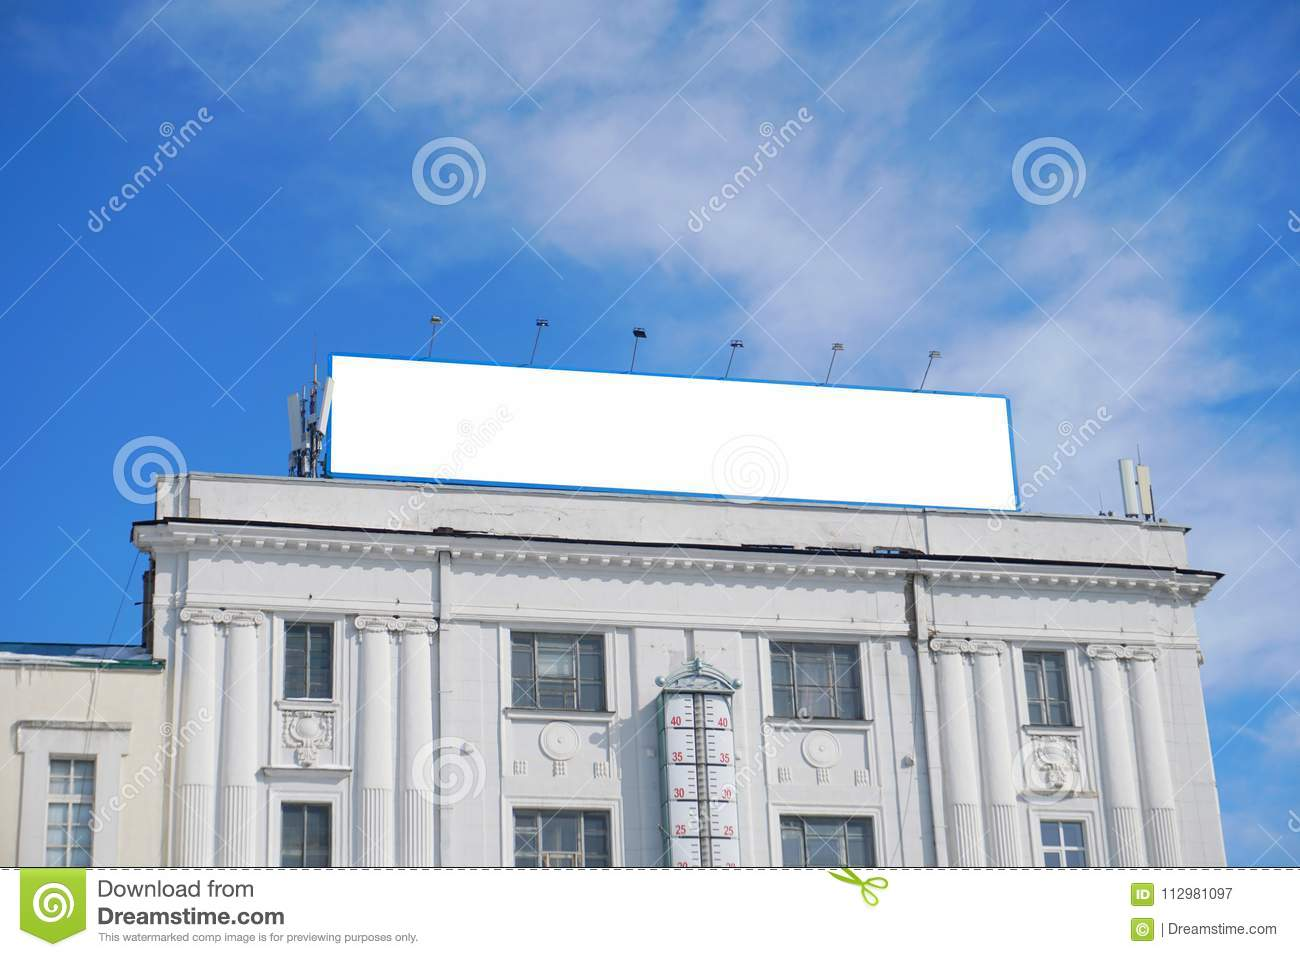 Billlboard for an advertise with the blue sky.